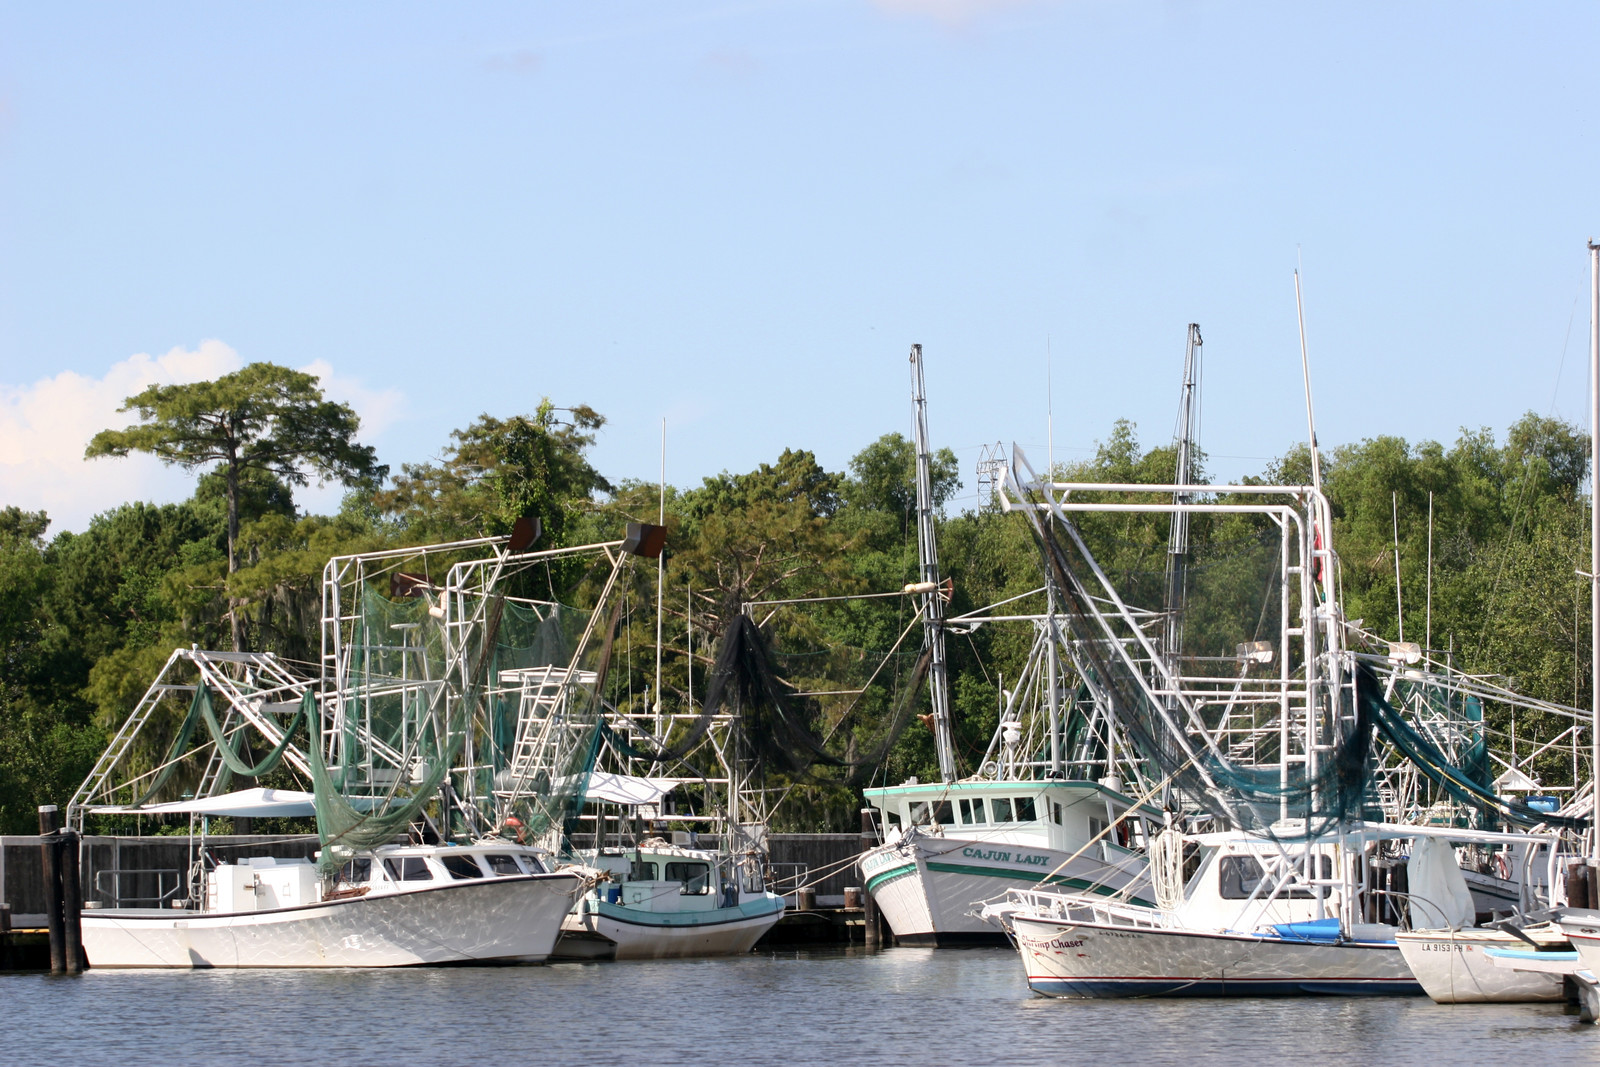 Top 5 Places to Retire in Louisiana - Fishing boats in a New Orleans Marina on a sunny day with blue skies